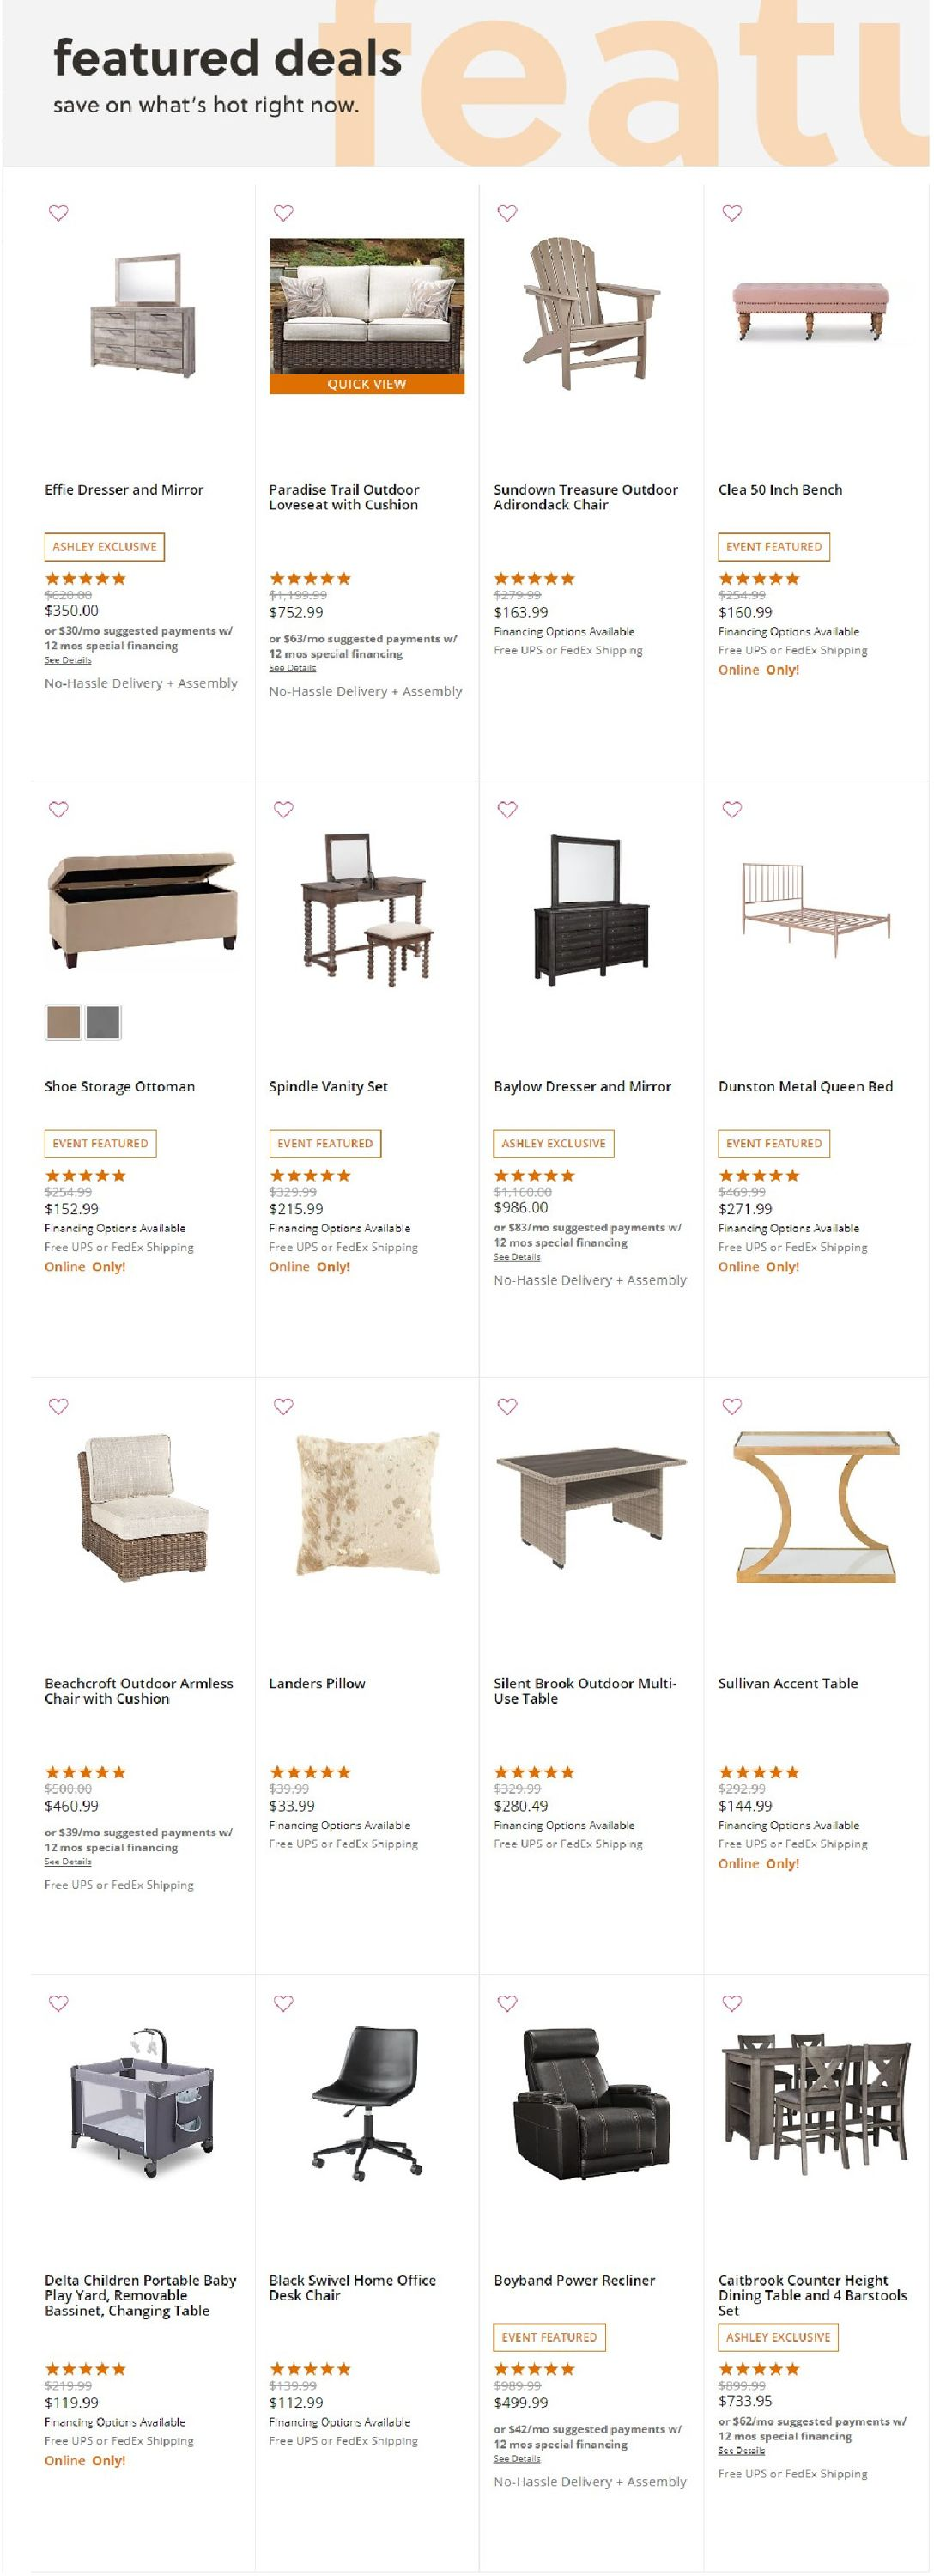 Ashley Furniture Pay My Bill : ashley, furniture, Ashley, Furniture, Black, Friday, Current, Weekly, 11/19, 11/25/2020, Frequent-ads.com